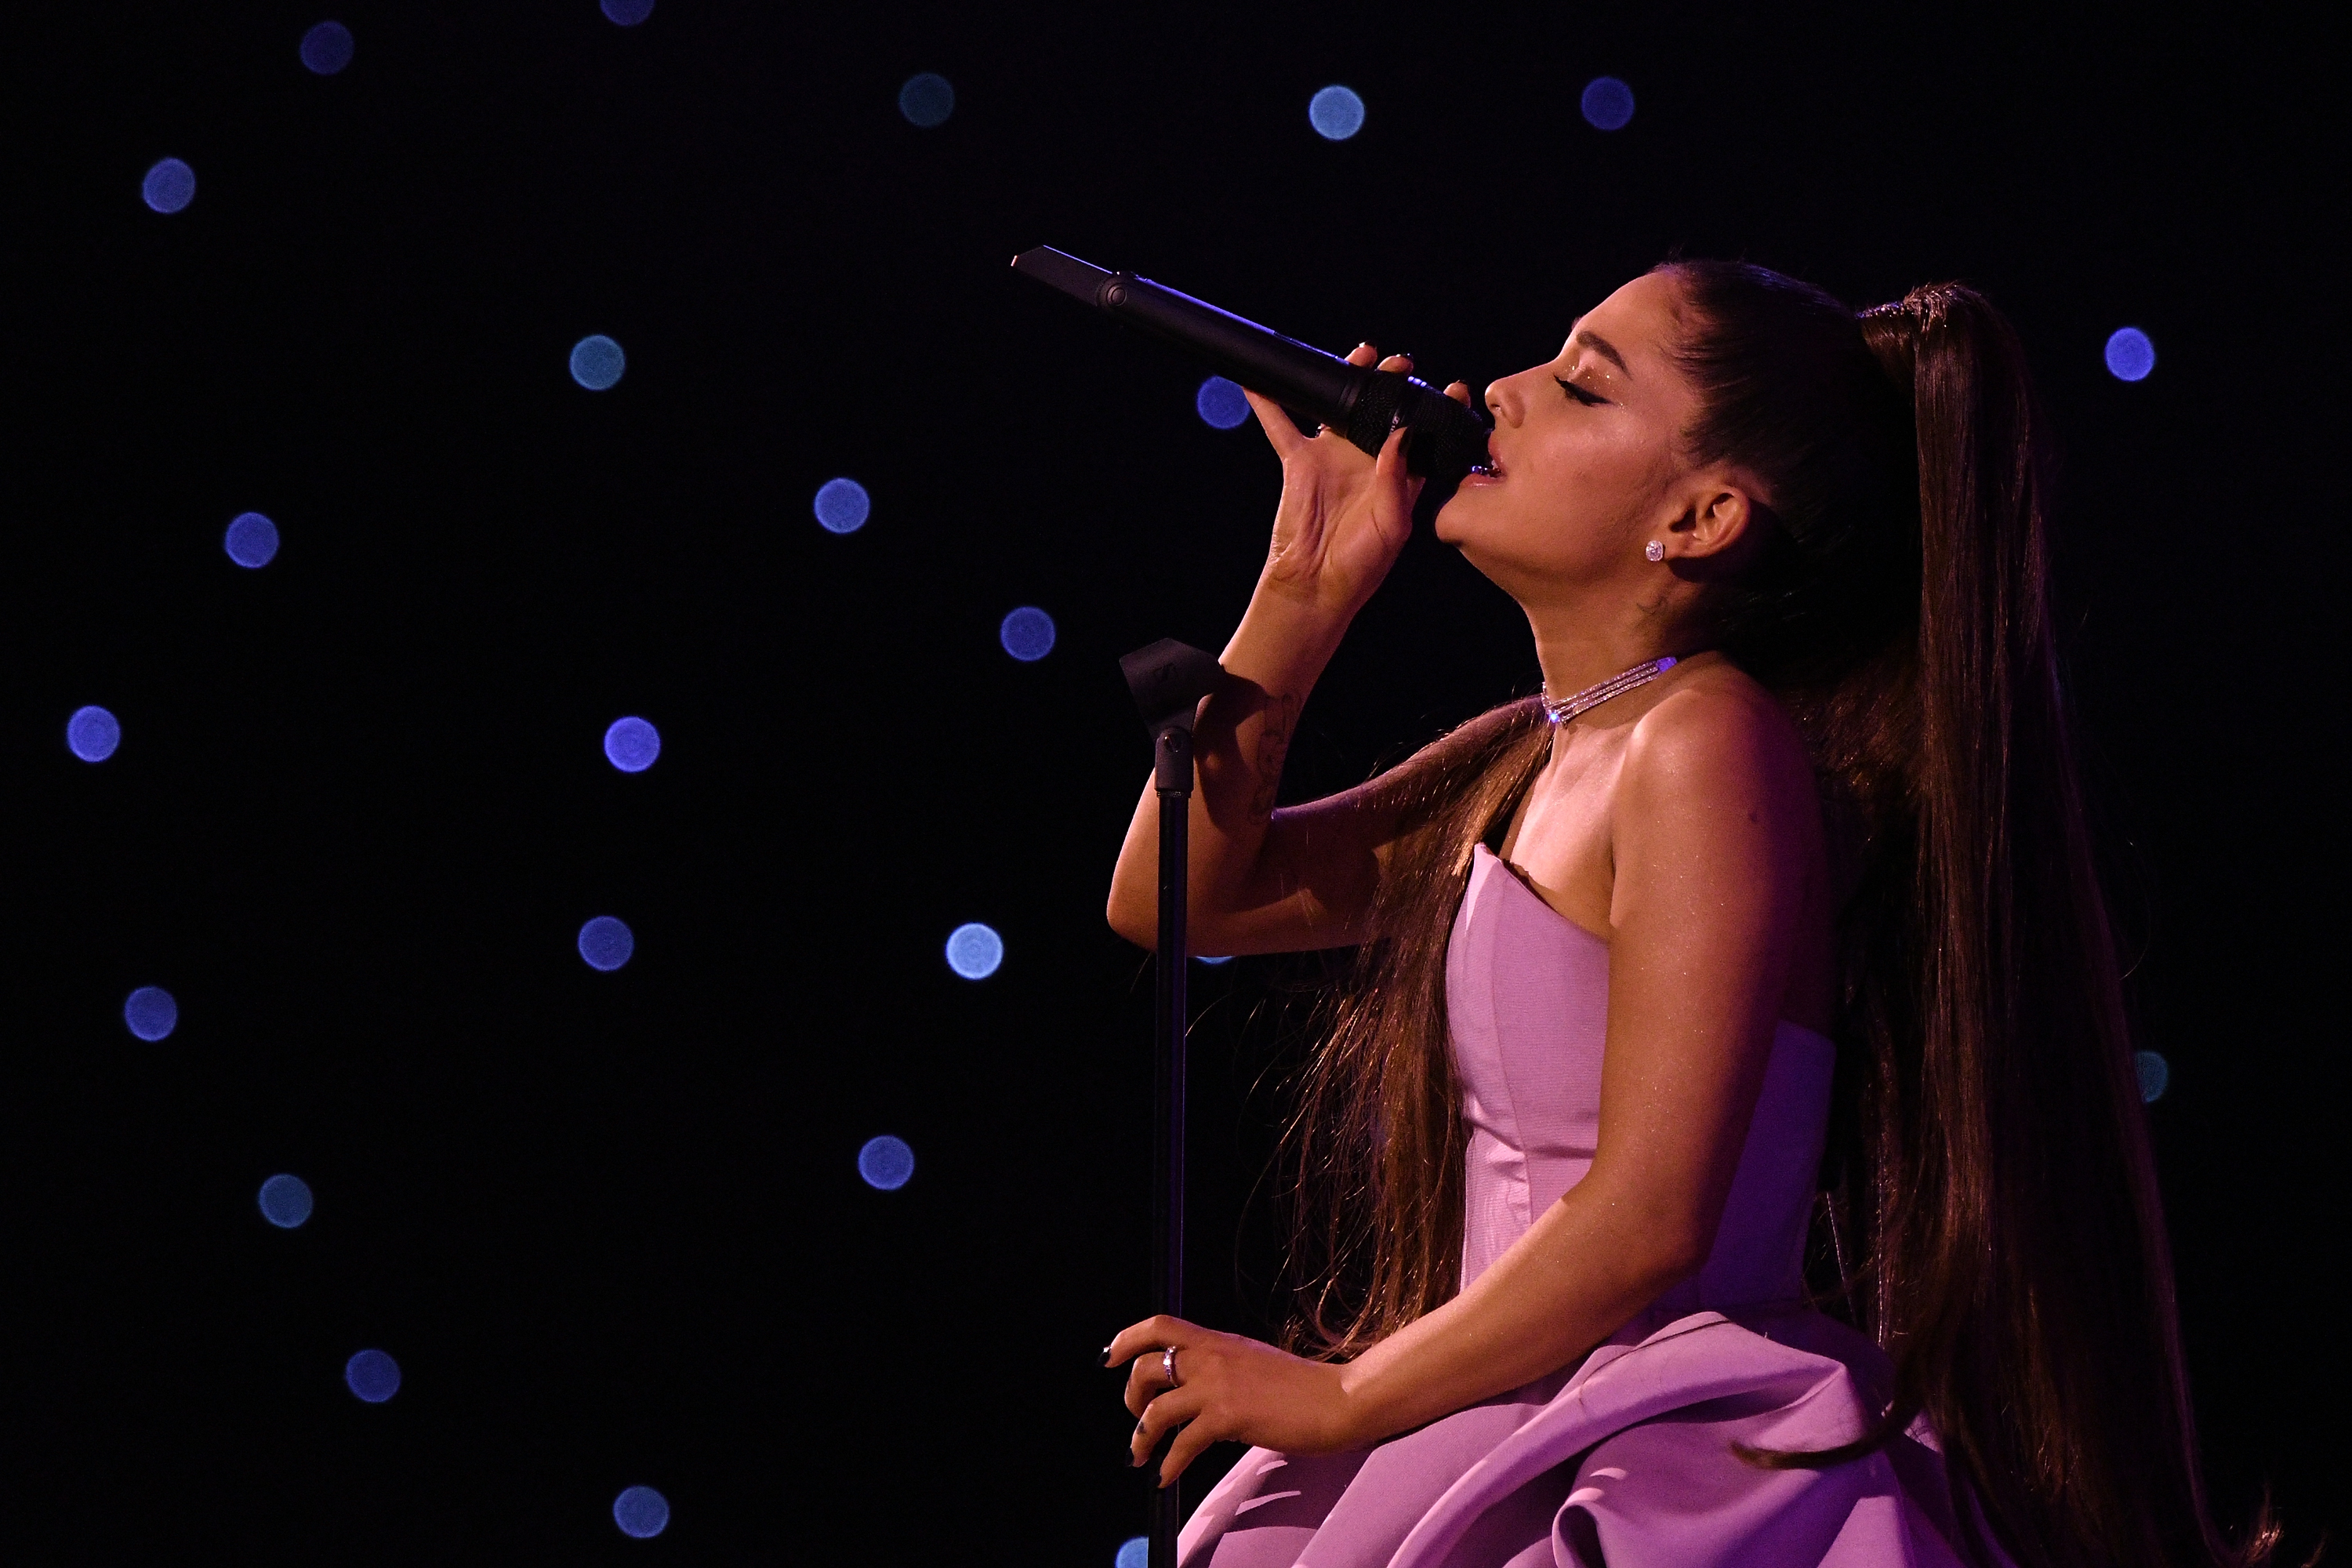 Ariana Grande preforms at Billboard Women In Music 2018 on December 6, 2018 in New York City. (Photo by Mike Coppola/Getty Images for Billboard )